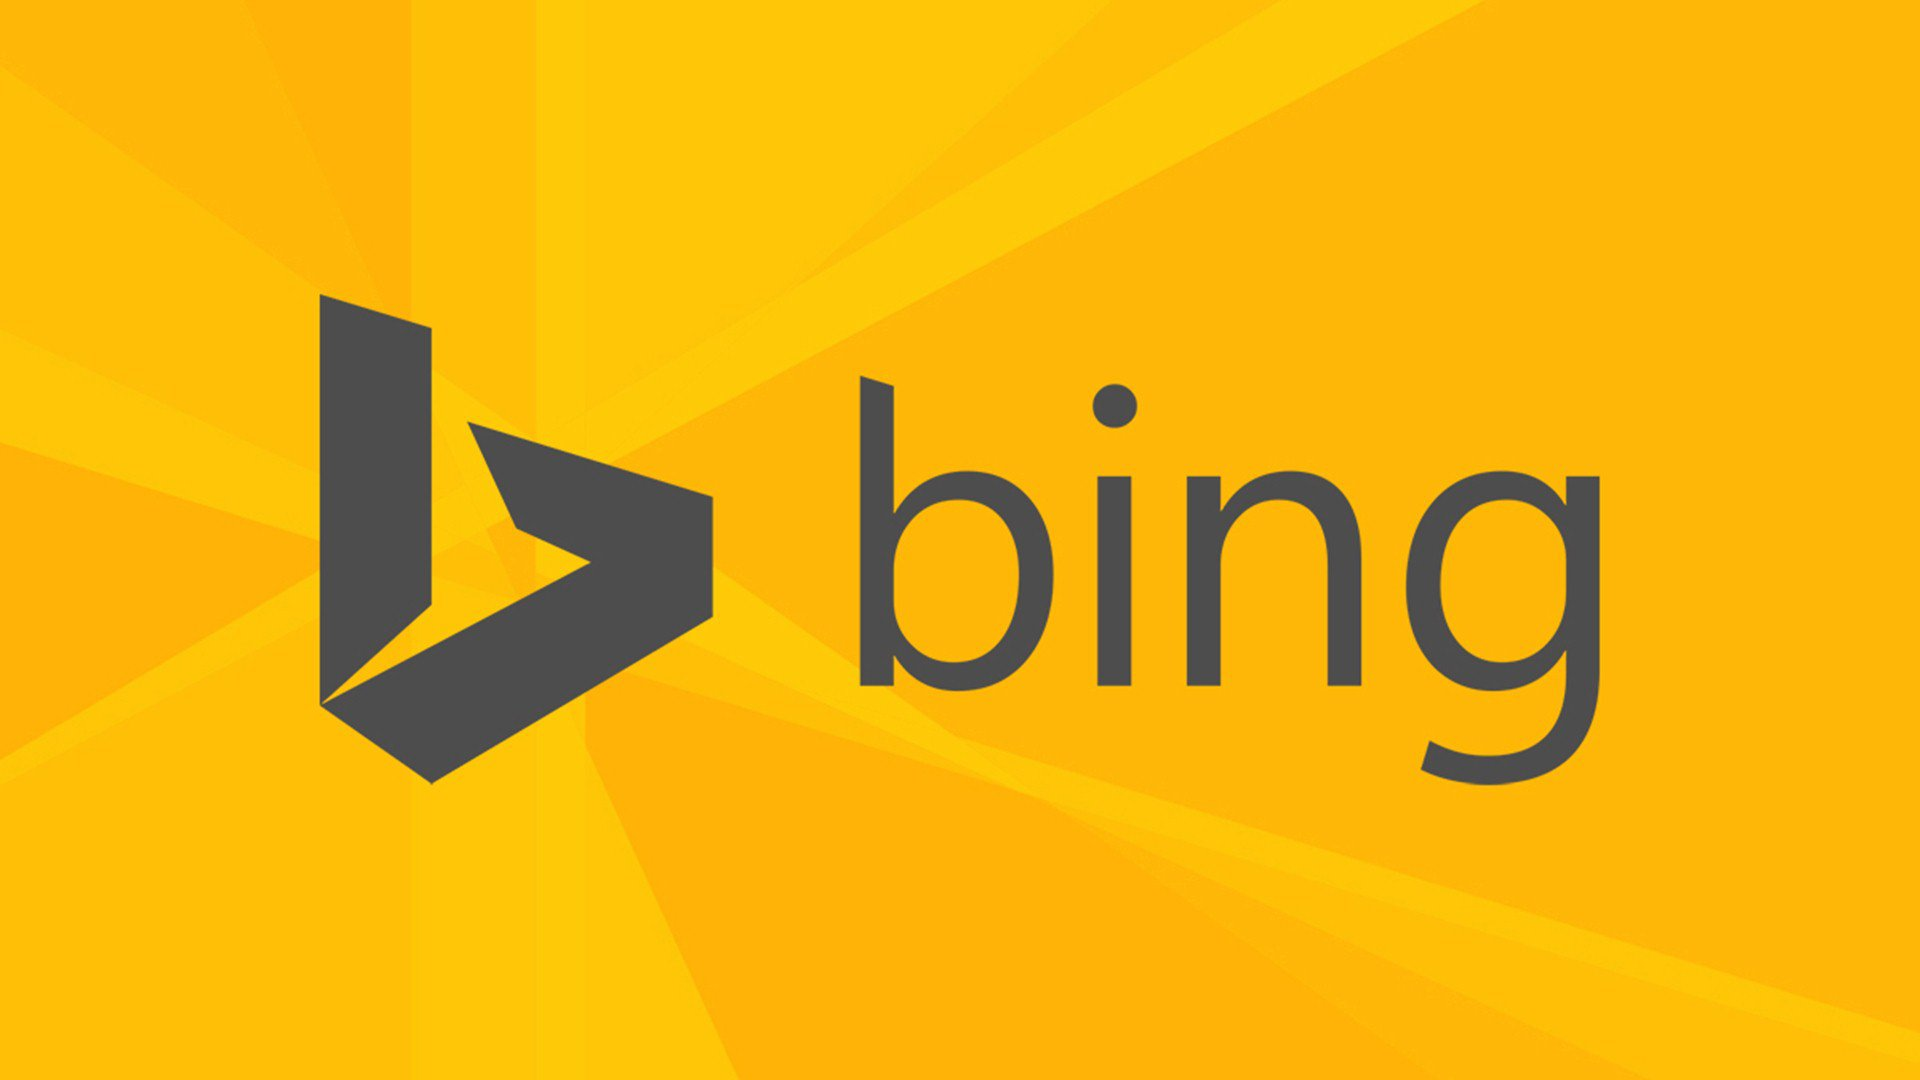 How To Get Daily Bing Image As Wallpaper On Windows 10